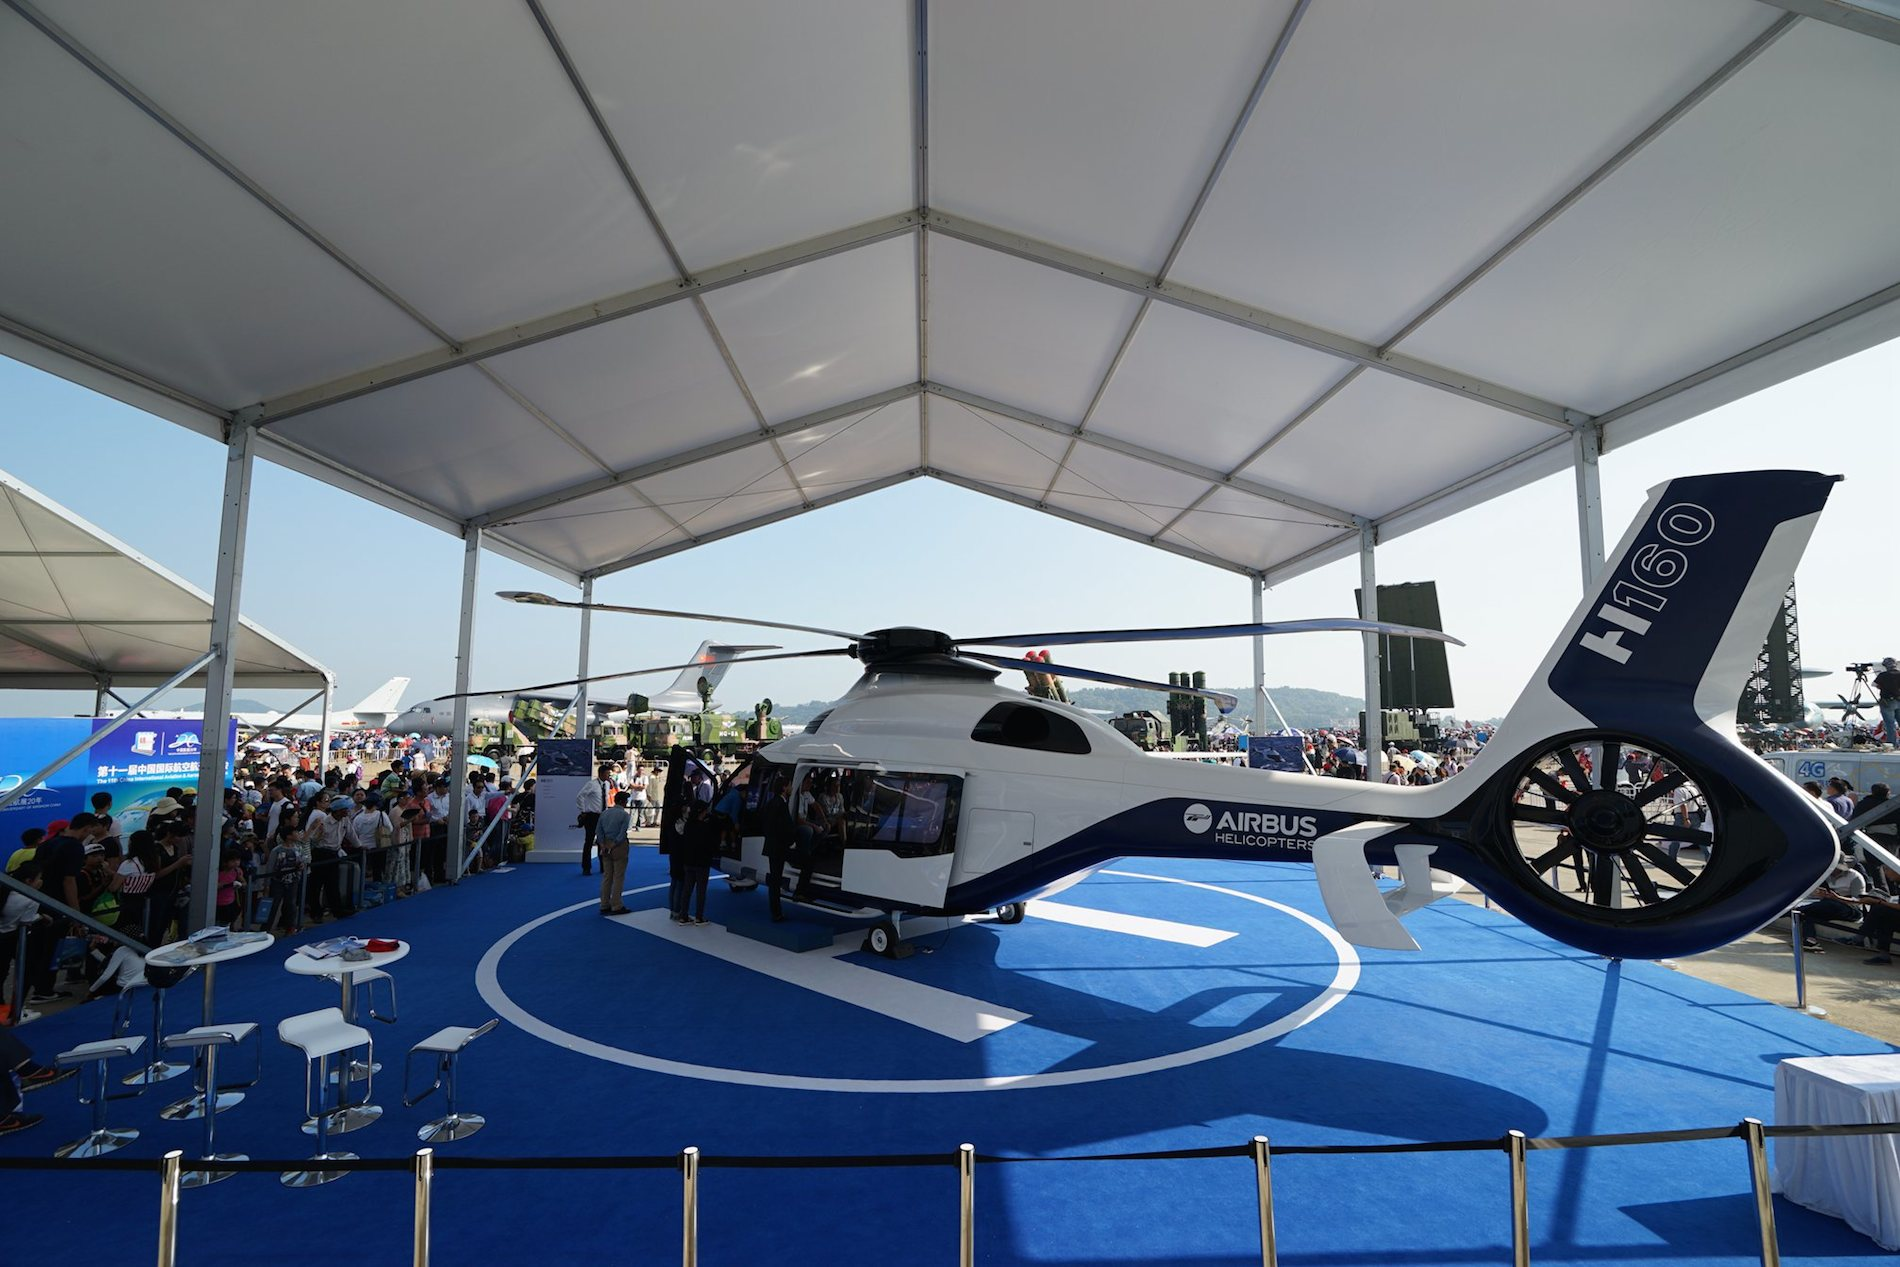 Liri Tent Technology Helicopter Hangar Tent Airport